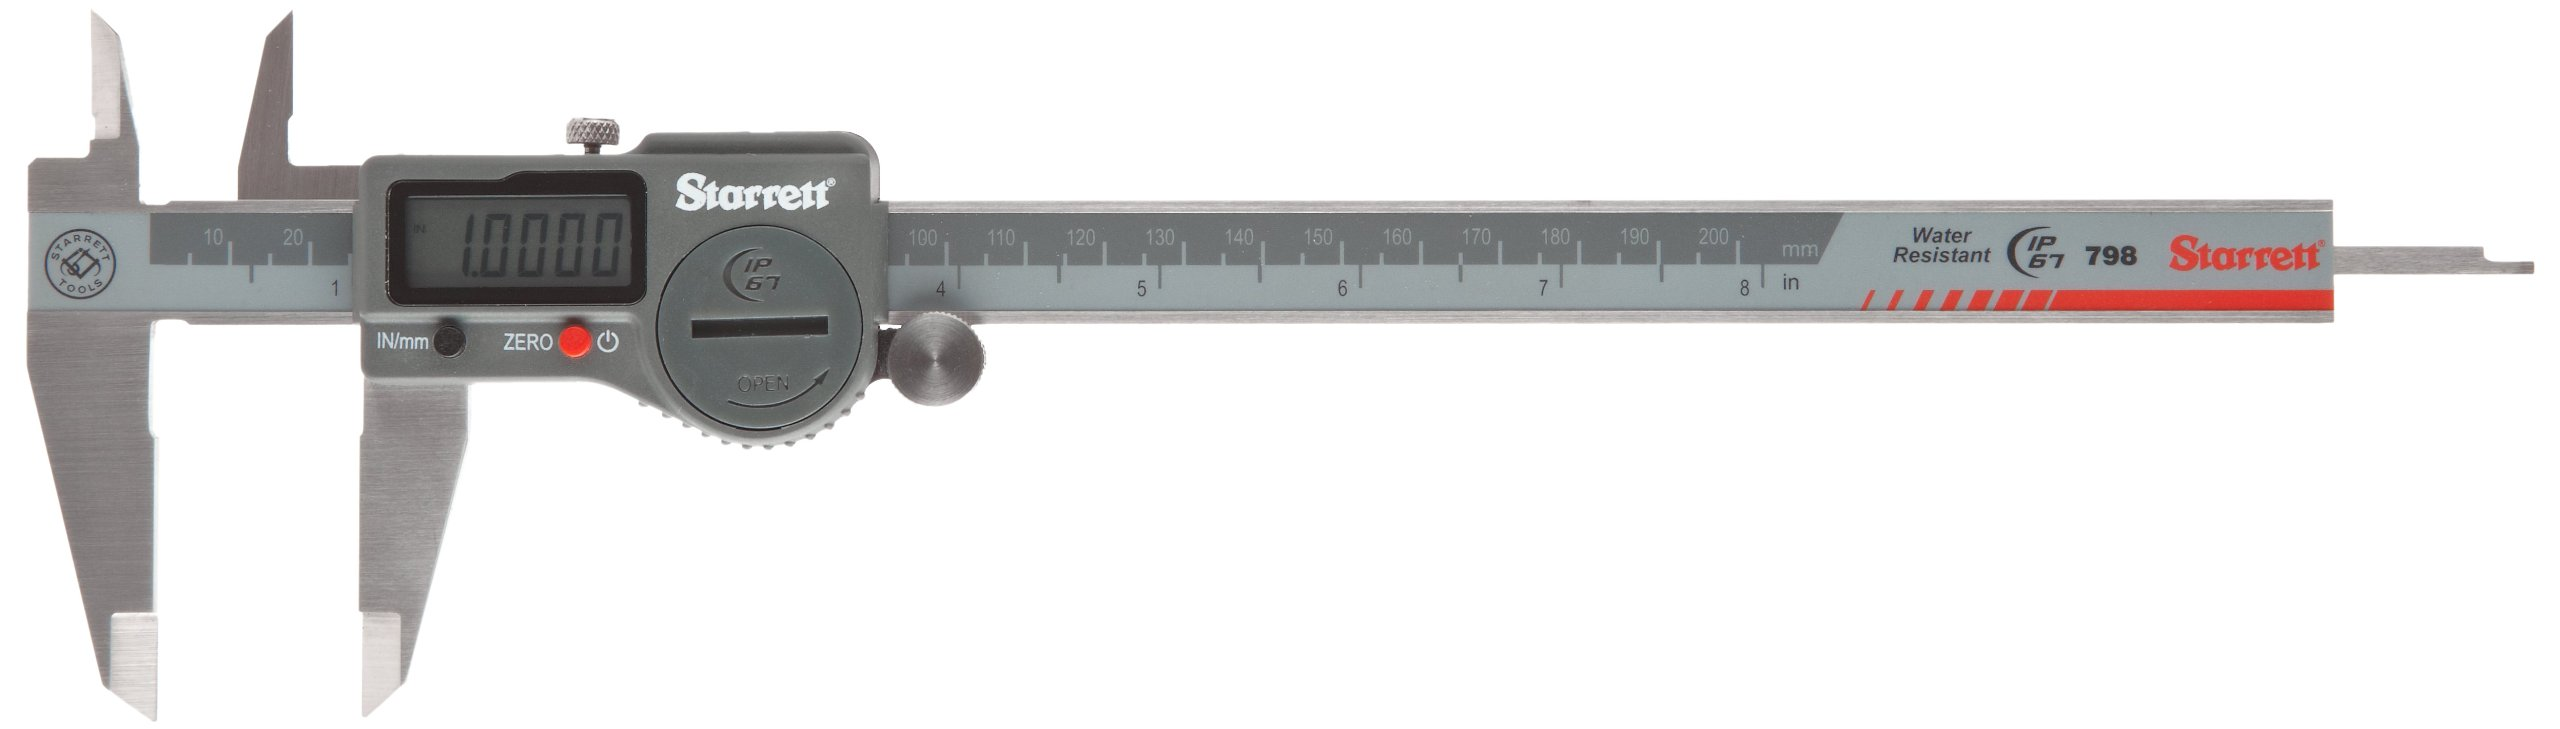 Starrett 798A-8/200TCAL Digital Caliper, Stainless Steel, Battery Powered, 0'' - 8'' Range, with NIST-Traceable Certificate of Calibration